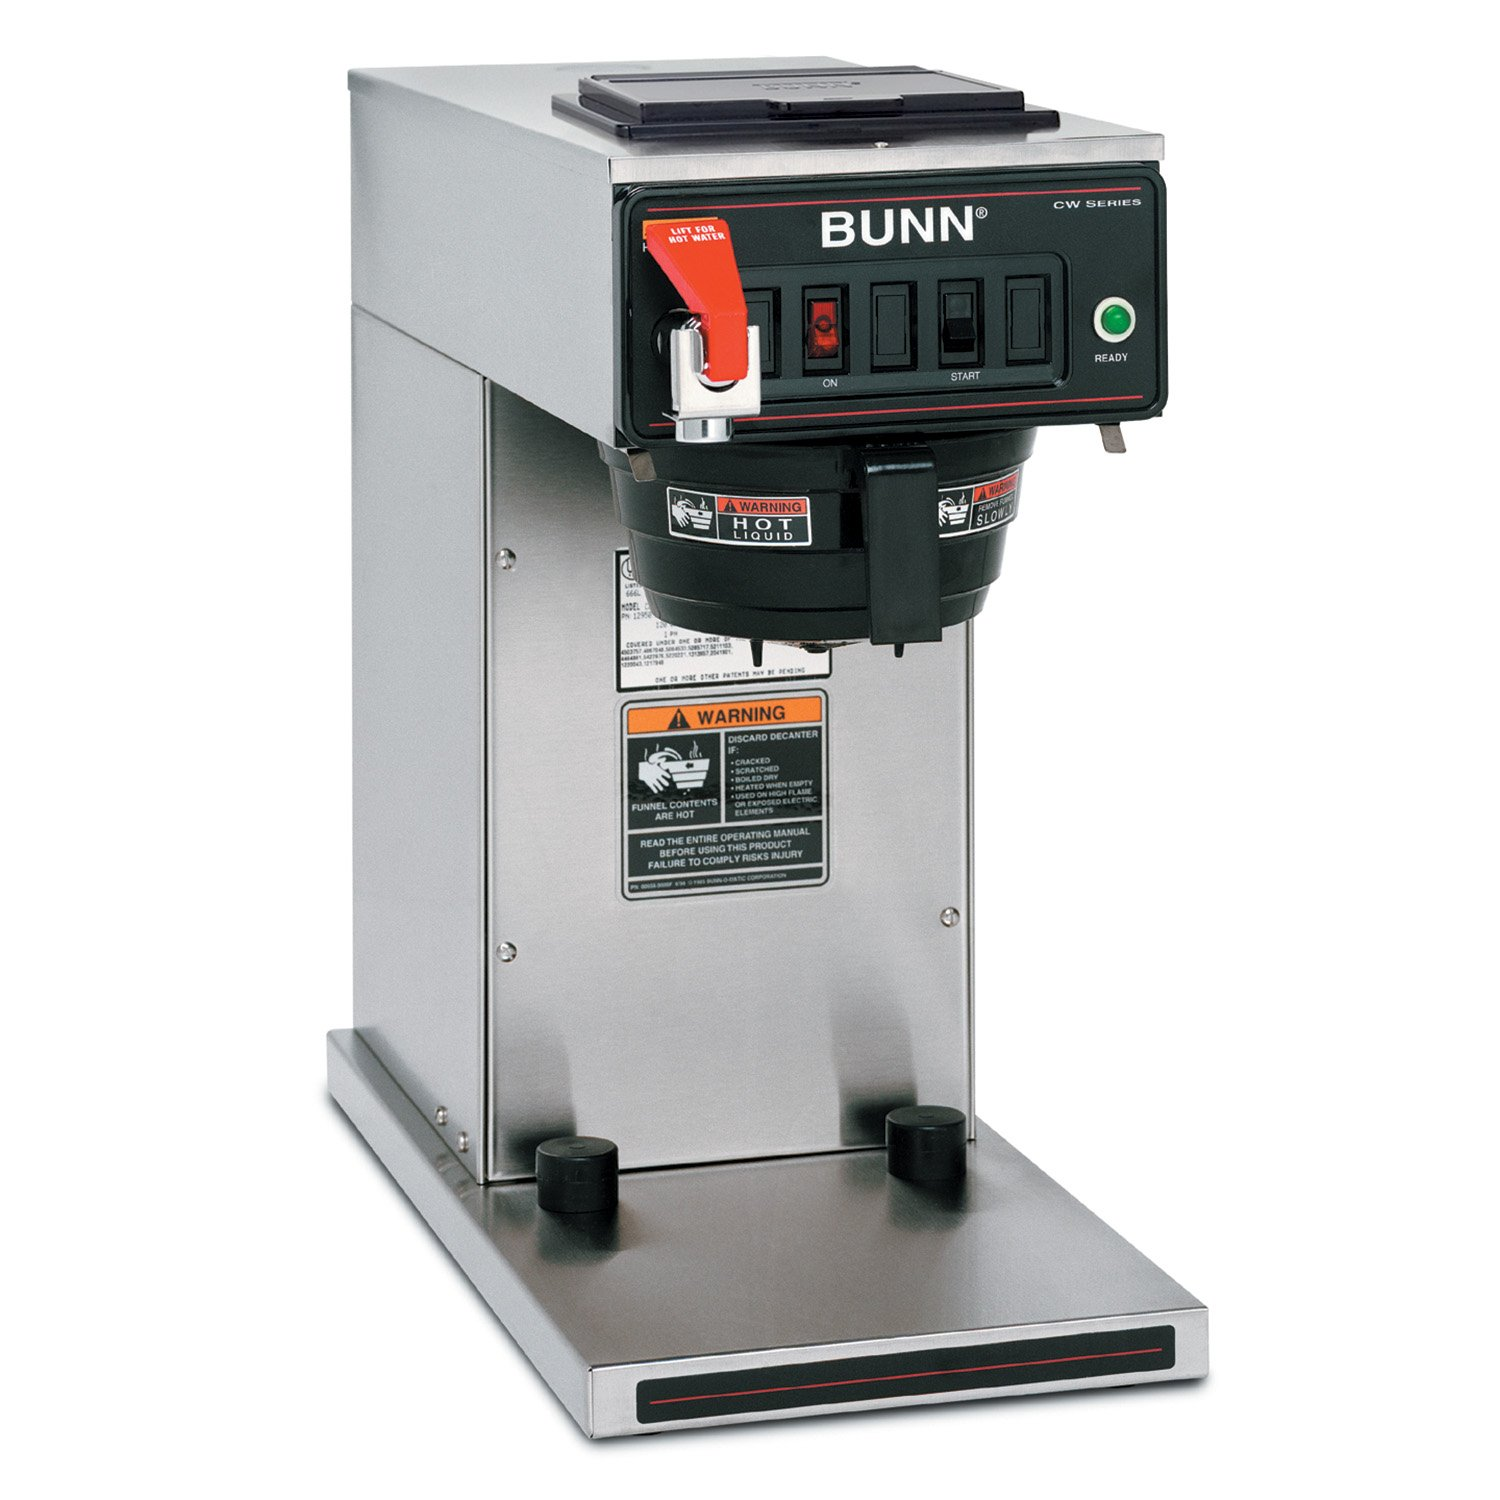 BUNN 12950.0360 12 Cup CWTF15-TC Automatic Commercial Thermal Coffee Brewer, Black/Stainless (120V) by BUNN (Image #1)